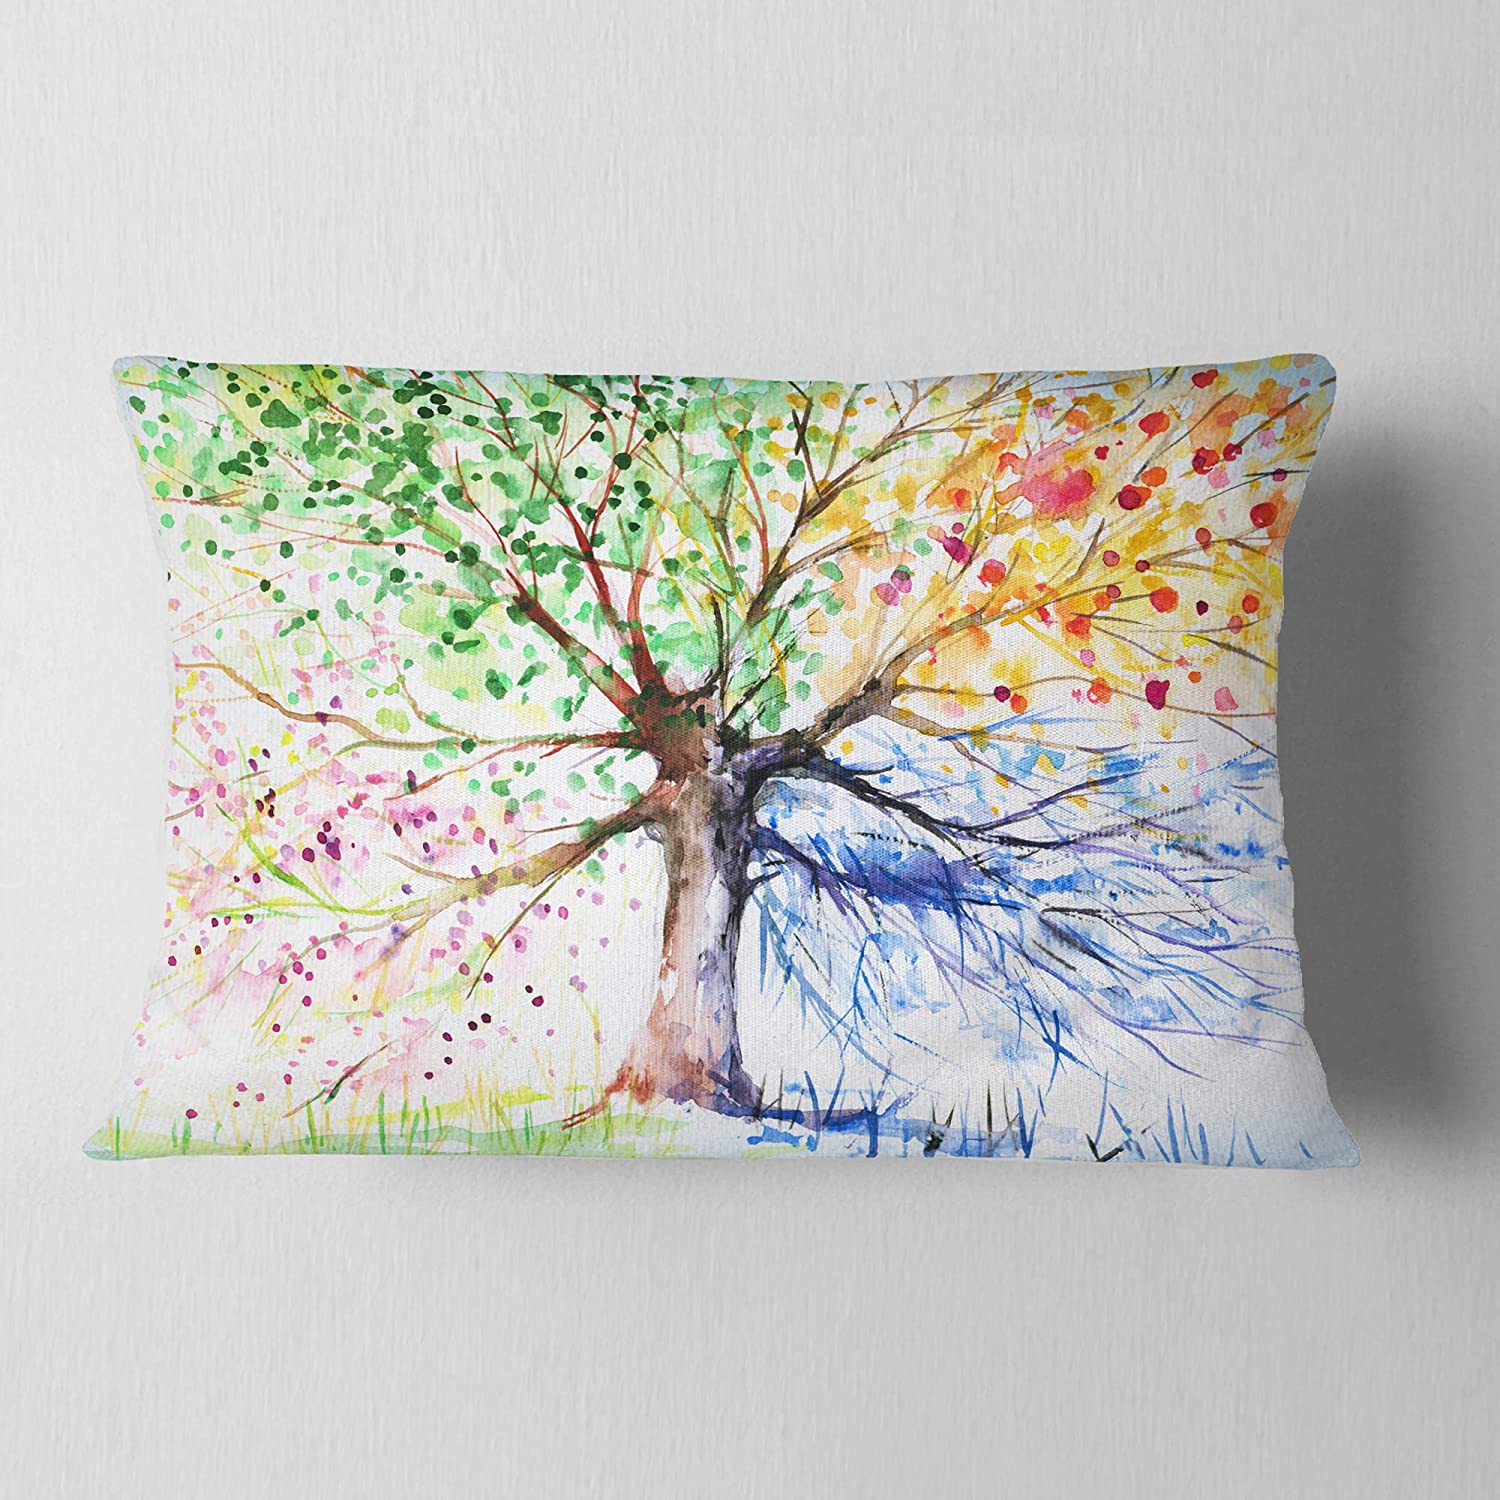 Designart CU6347-12-20 Four Seasons Tree Floral Lumbar Cushion Cover for Living Room x 20 in Insert Printed On Both Side in Sofa Throw Pillow 12 in